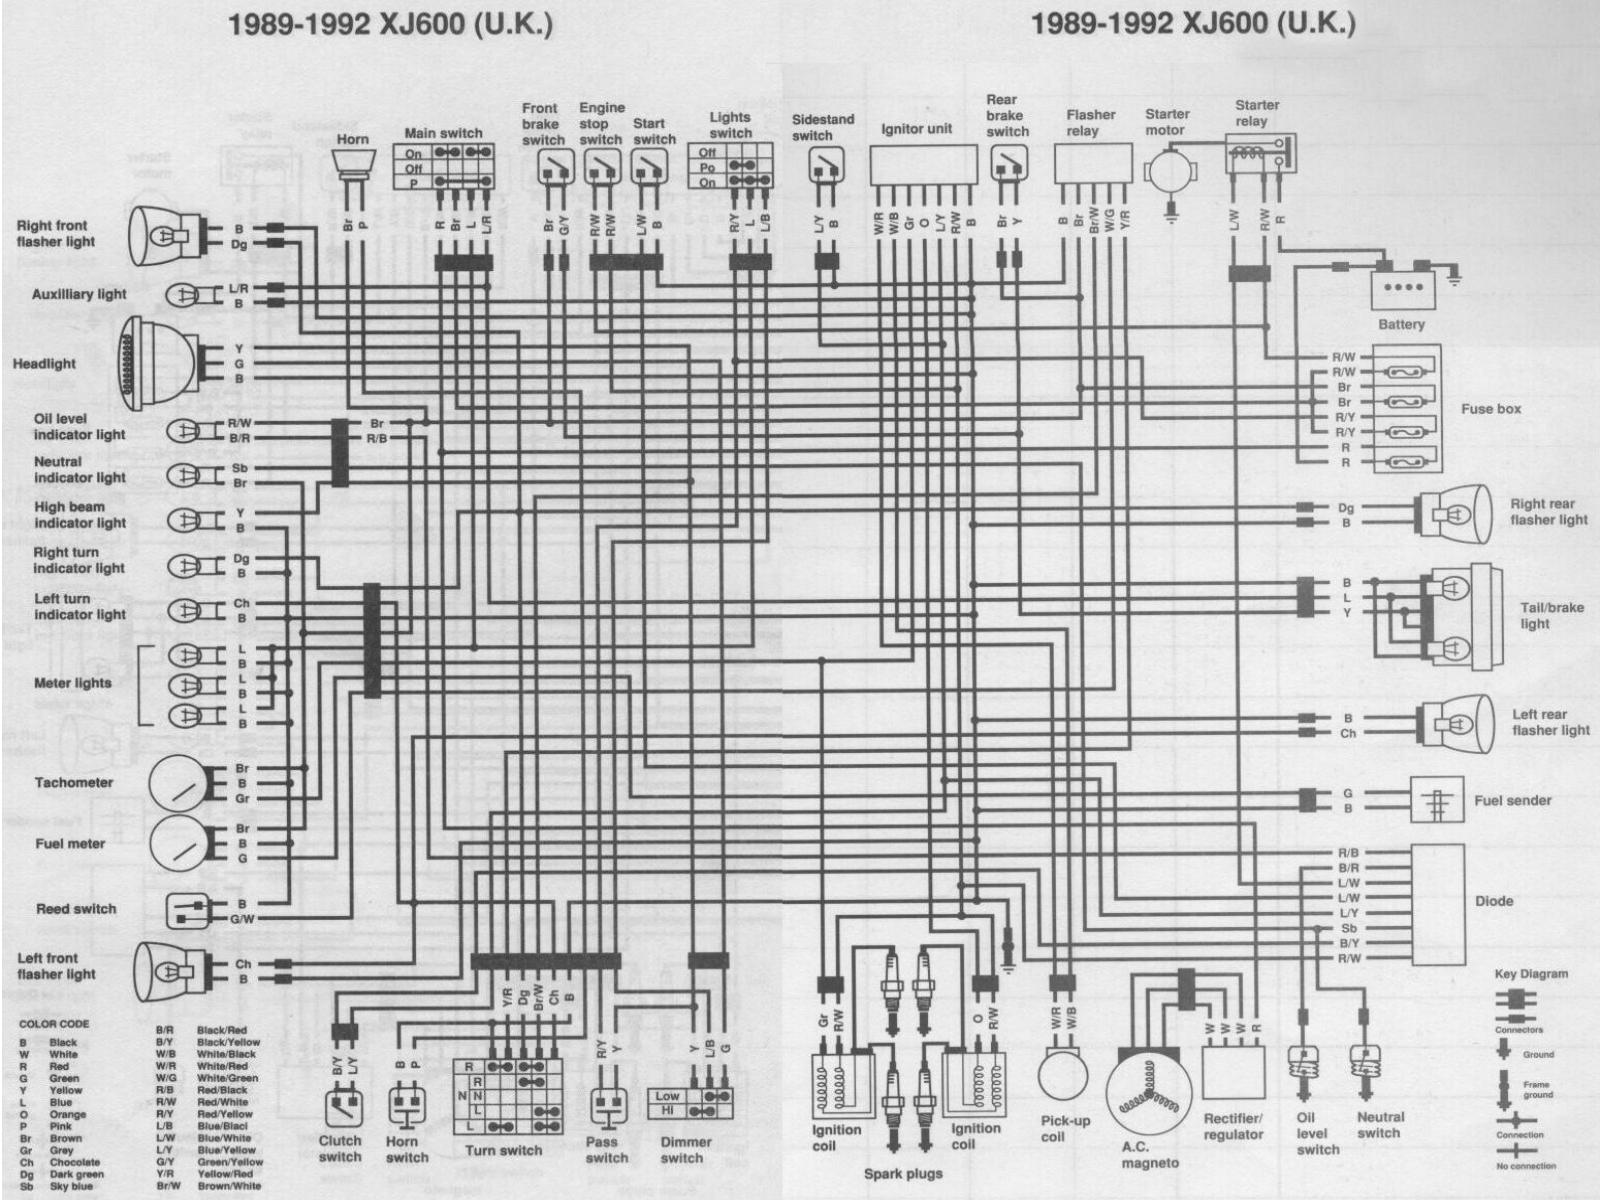 Wiring Diagram 87 Virago Trusted Ktm Symbols 1984 Yamaha Wire House U2022 1981 750